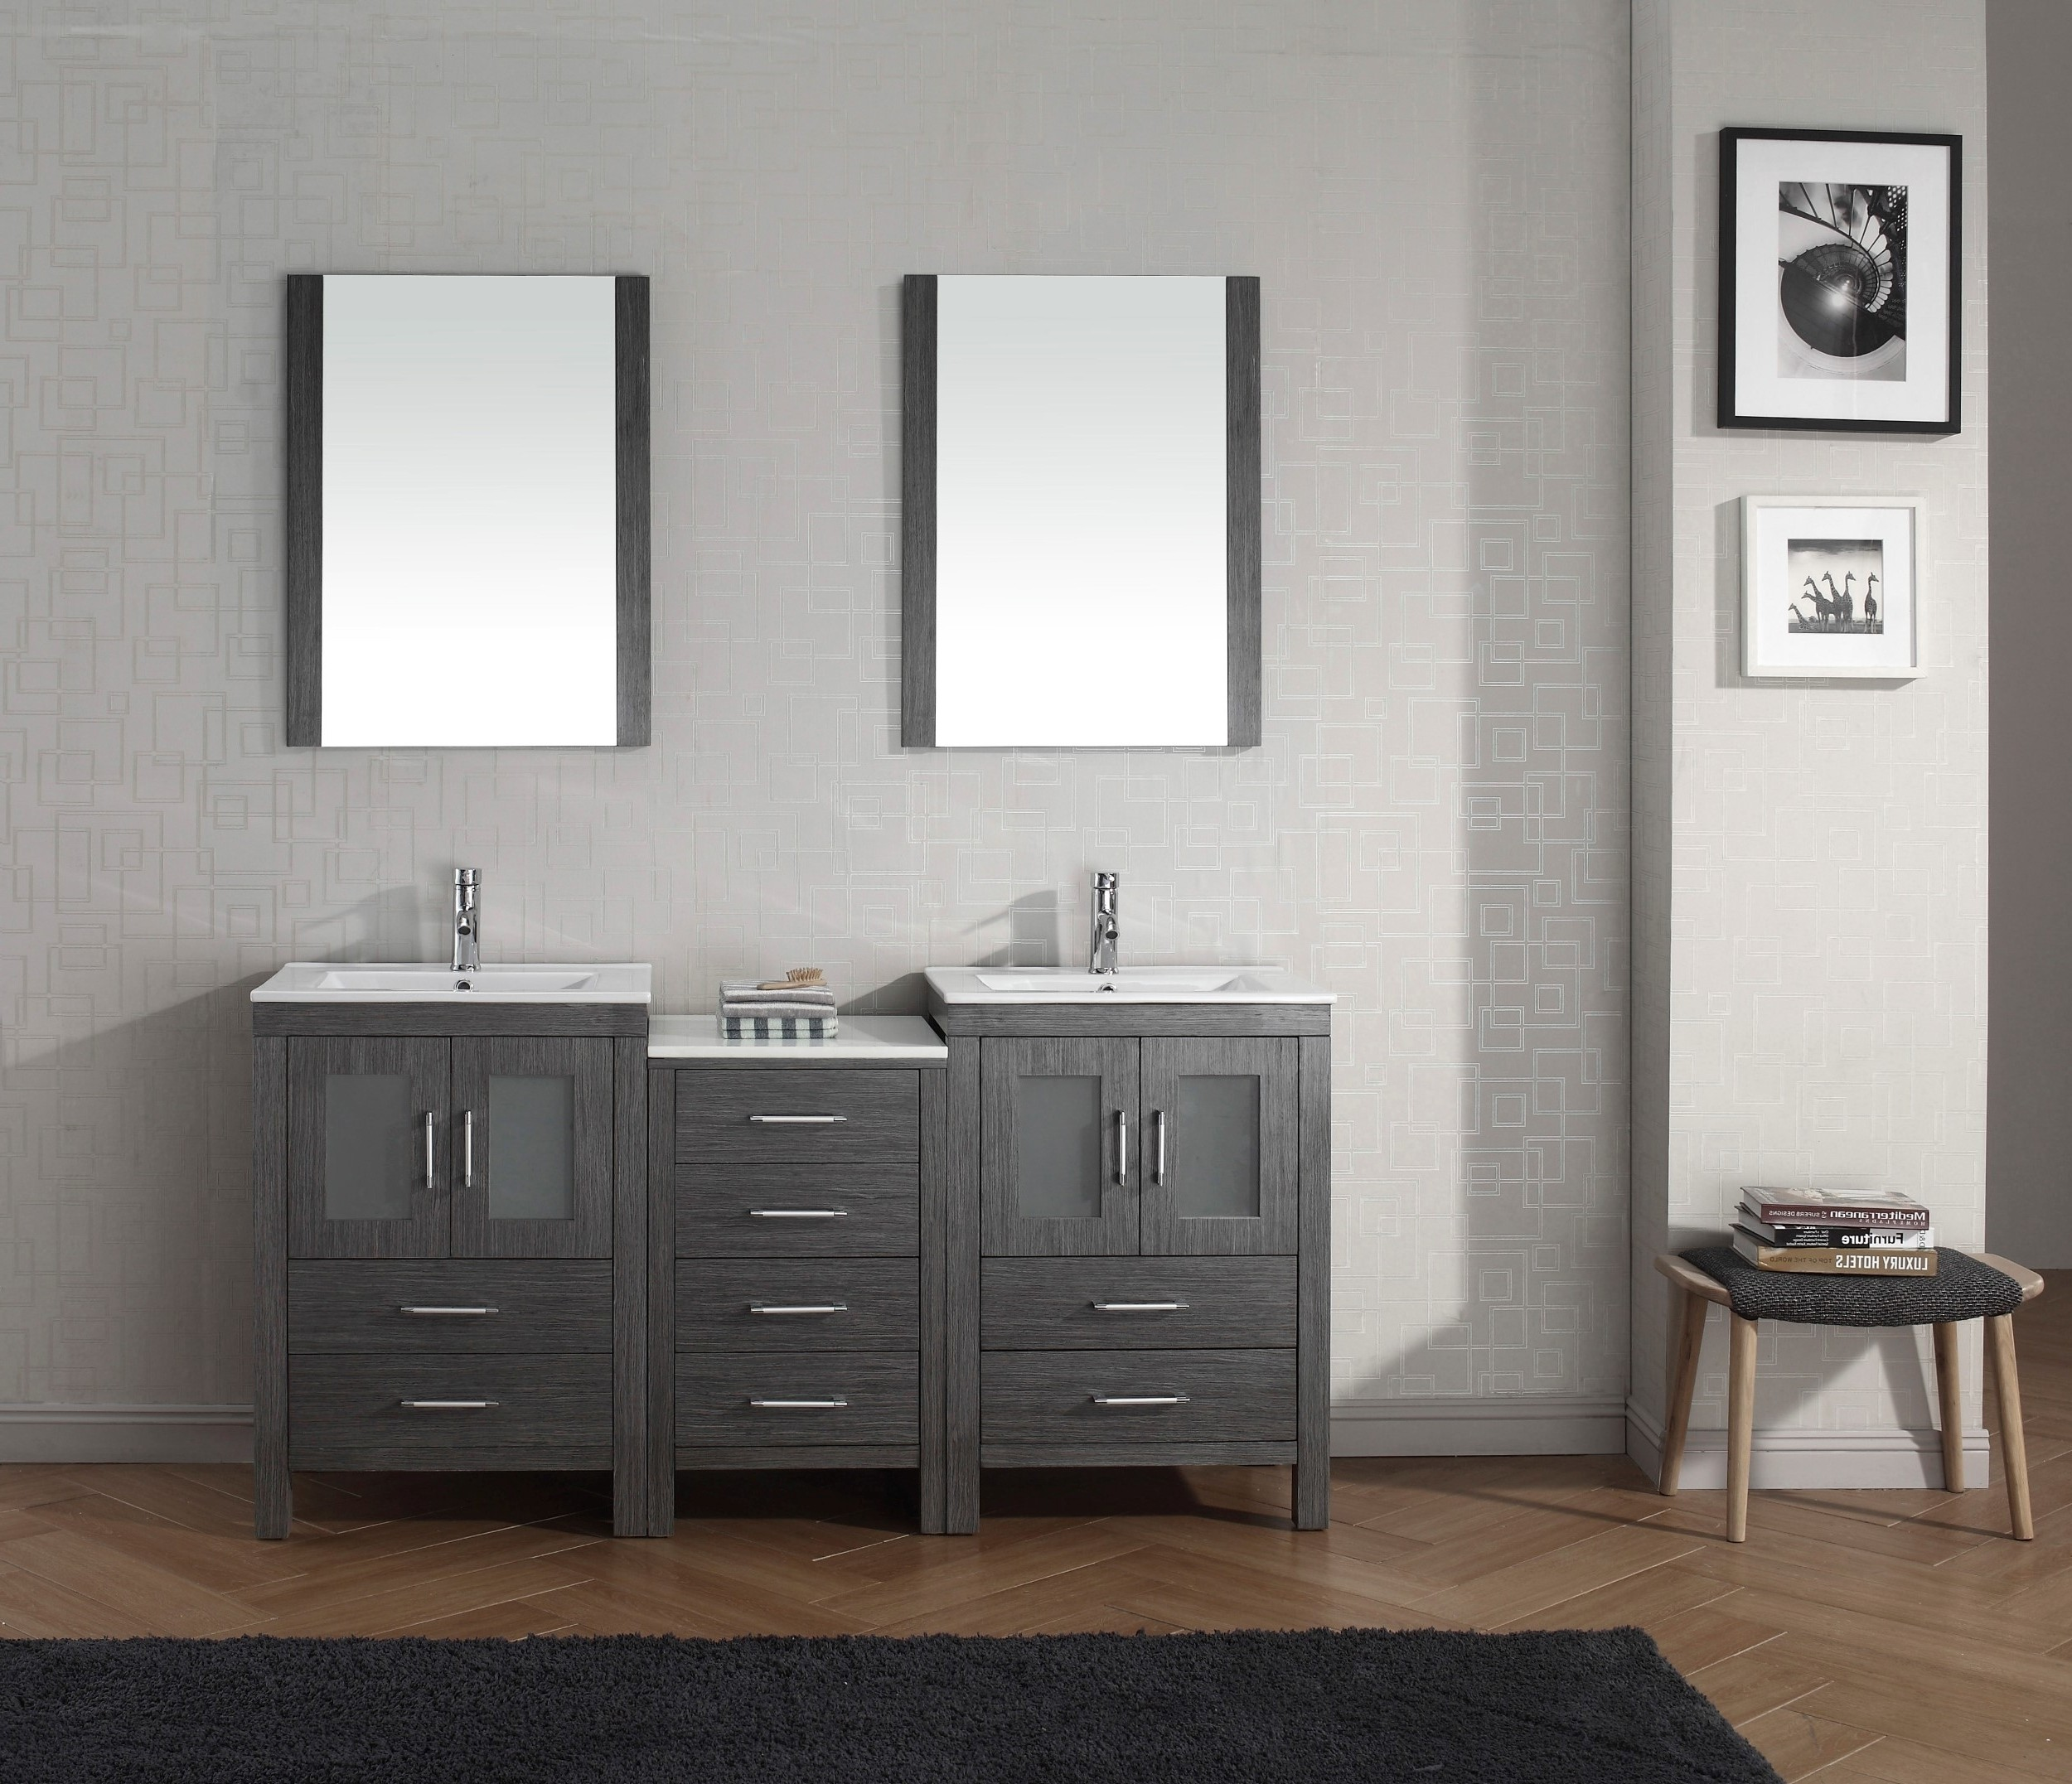 Best of houzz bathroom vanities portrait